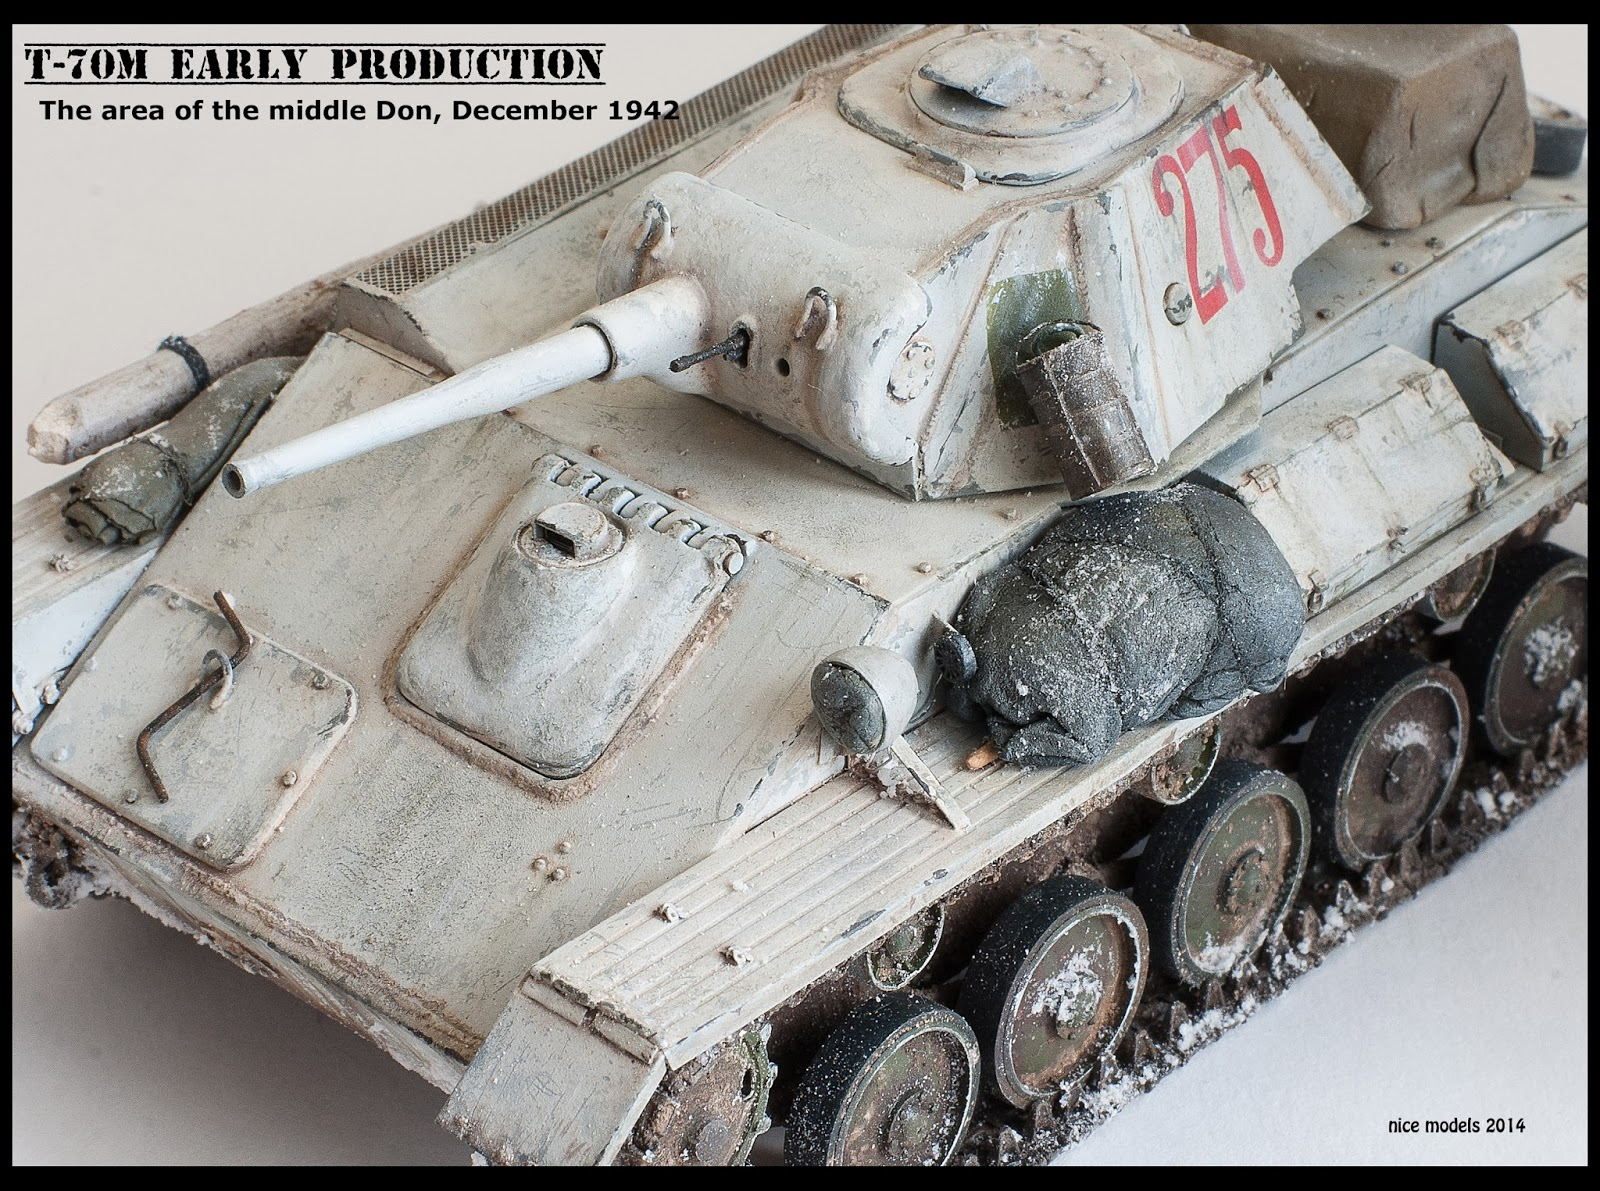 NICE MODELS: T-70m Early Production. Finish!: http://yarlikov.blogspot.com/2014/03/t-70m-early-production-finish.html